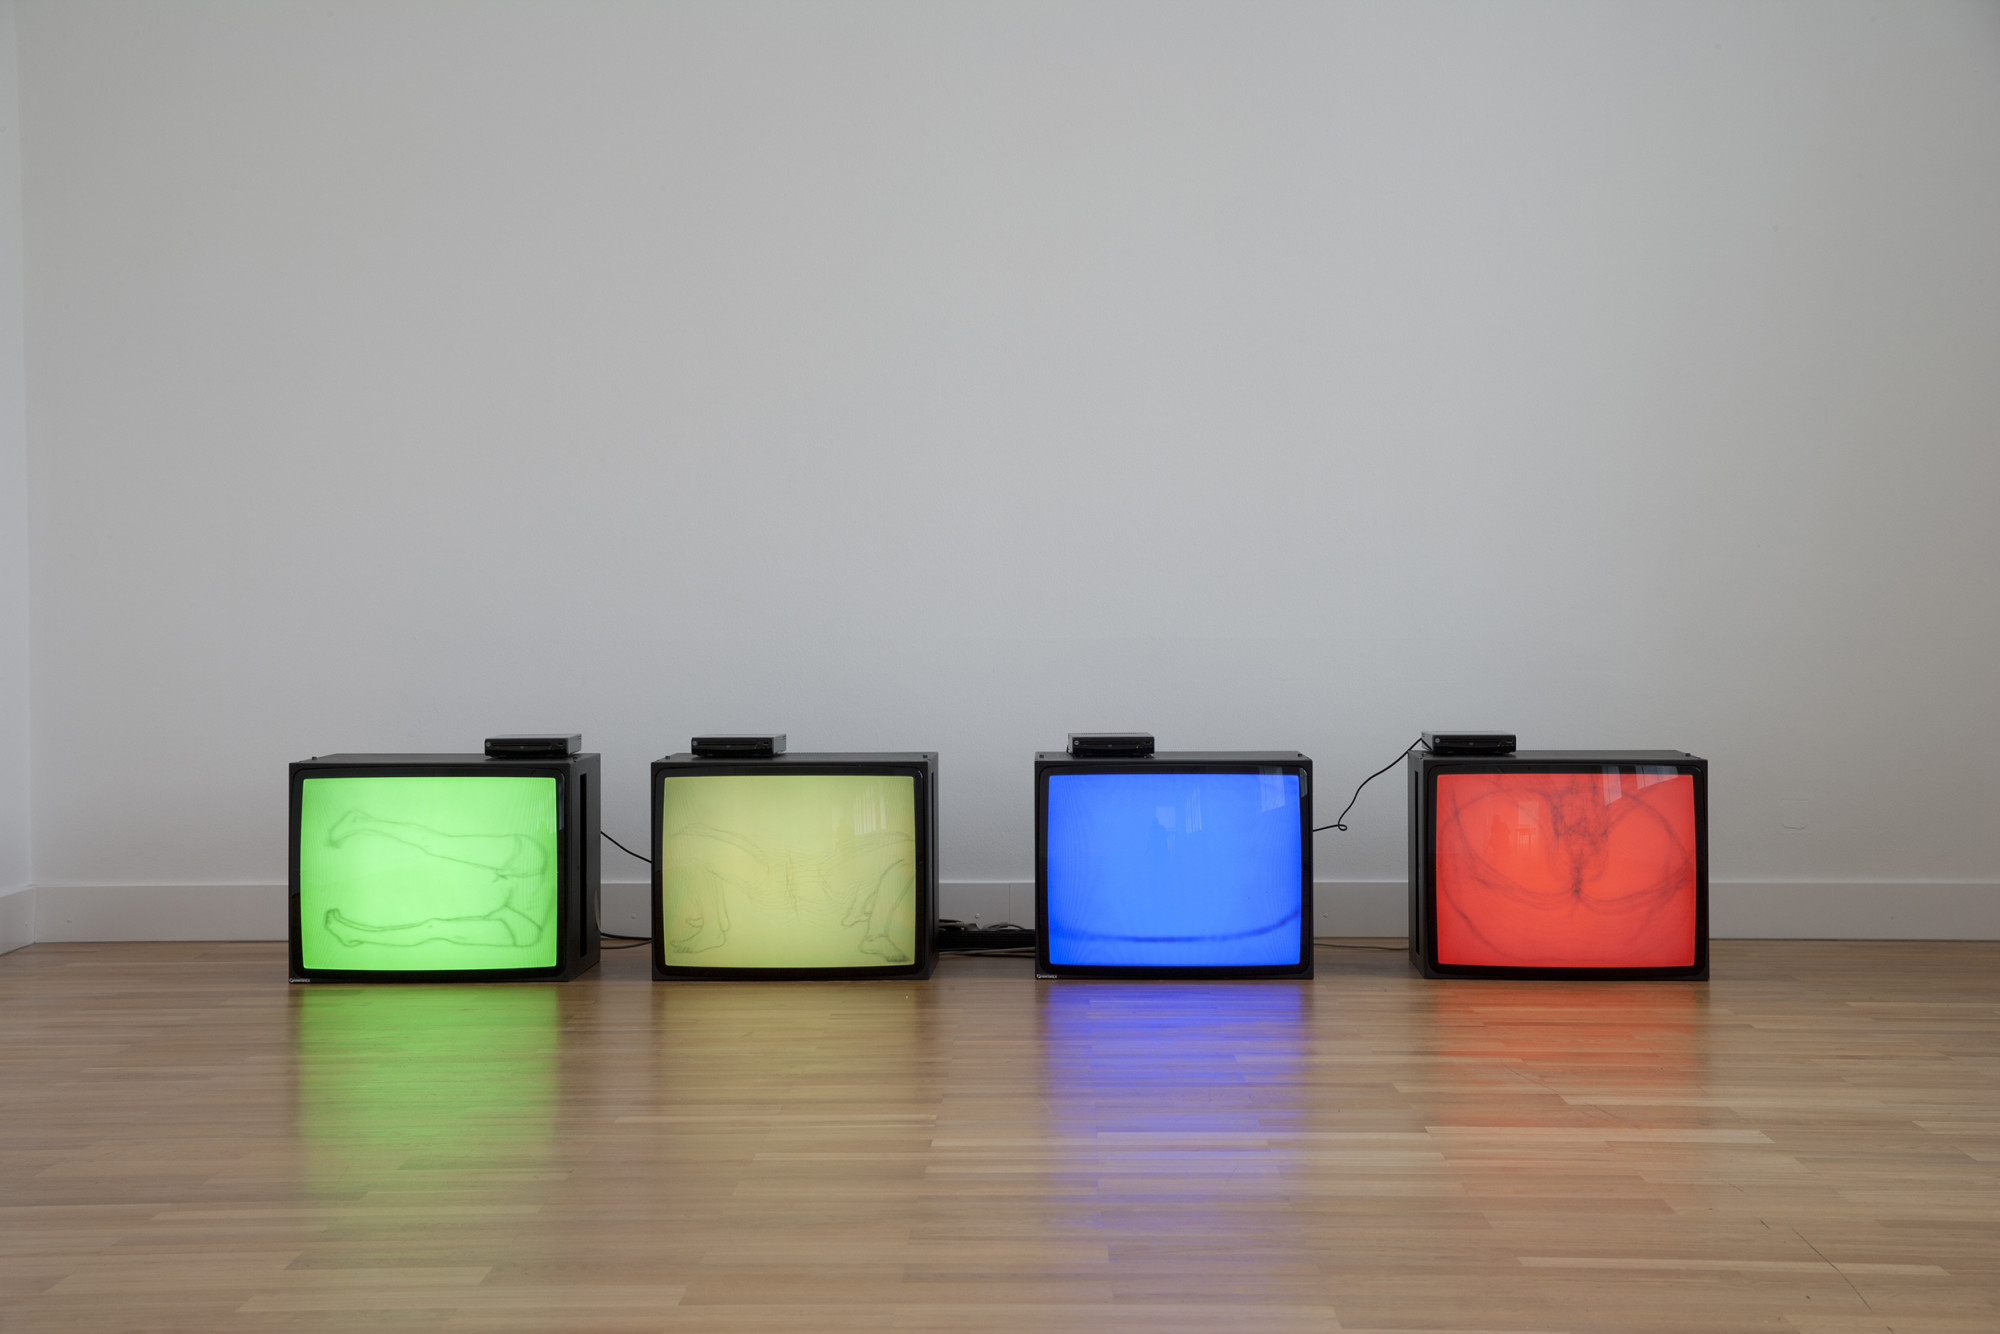 <p>Installation view, Angus Fairhurst, Westfalischer Kunstverein, Münster, 11 June – 4 September 2011</p>